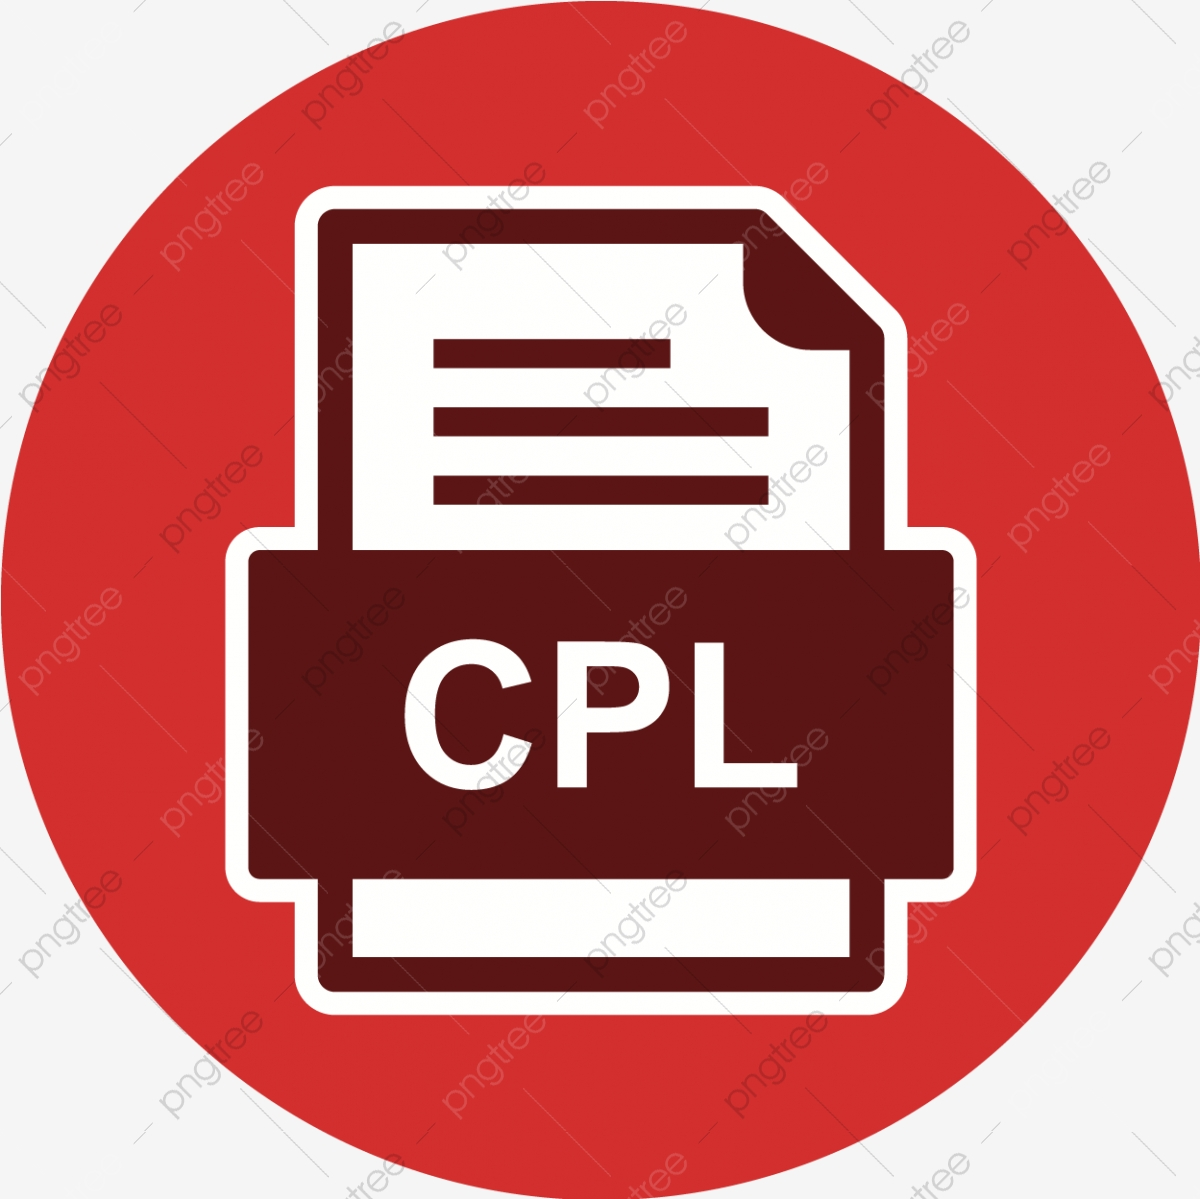 Cpl File Document Icon, Cpl, Document, File PNG and Vector with.